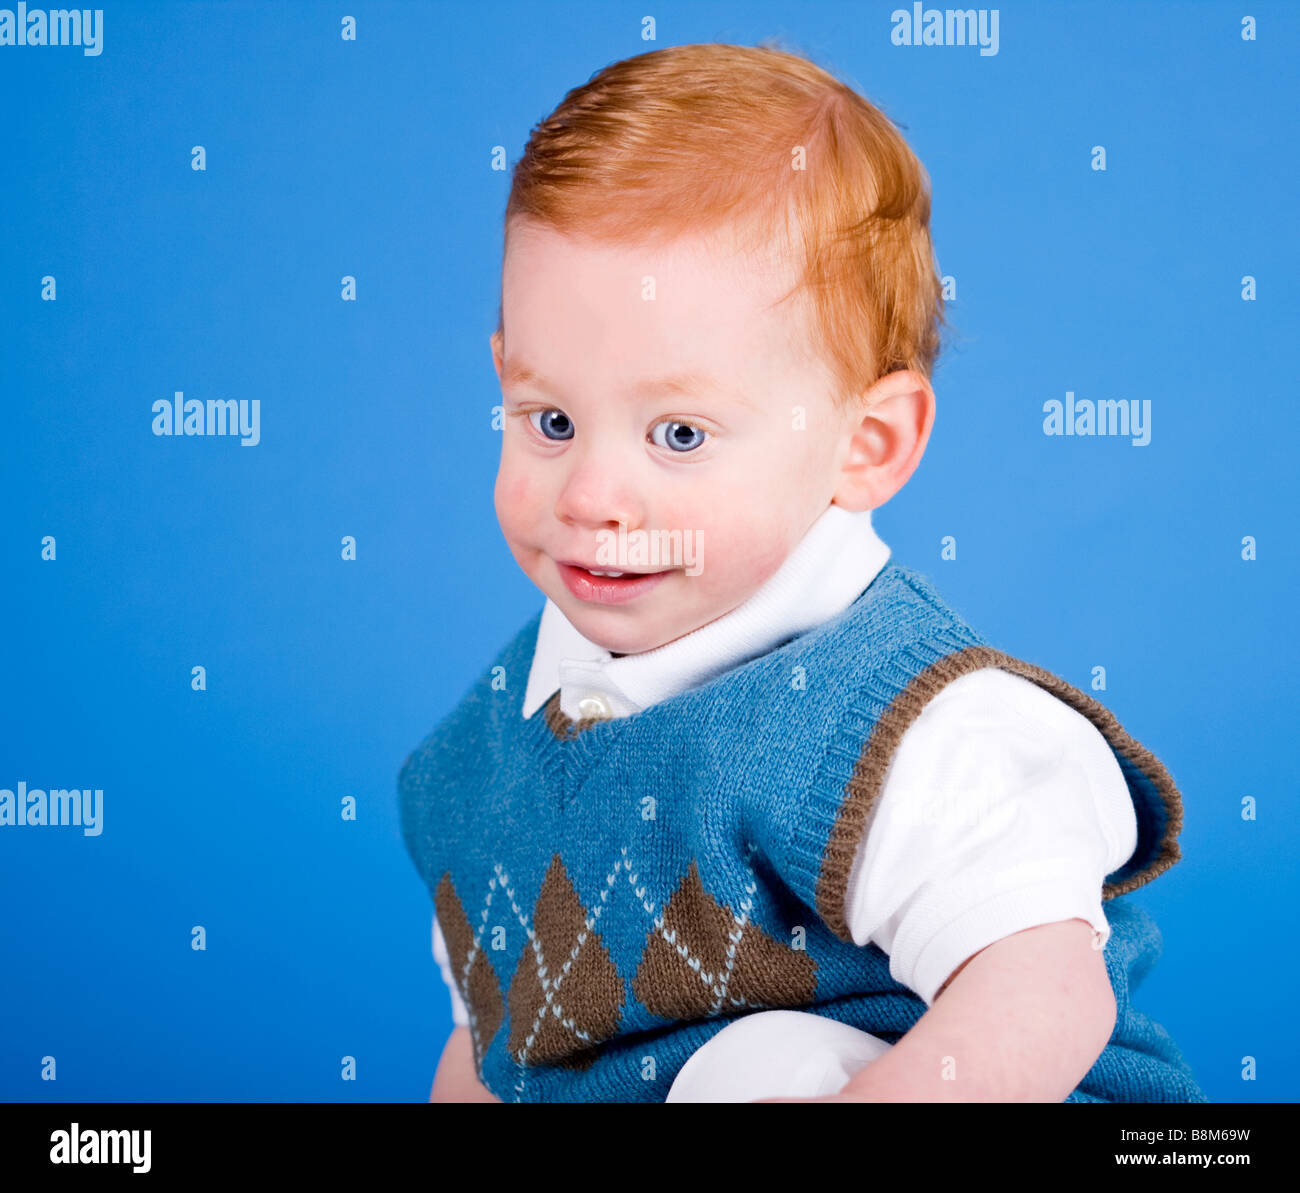 Young Happy Boy With Brown Wet Hair Is Smiling And: Smiling Irish Eyes Stock Photos & Smiling Irish Eyes Stock